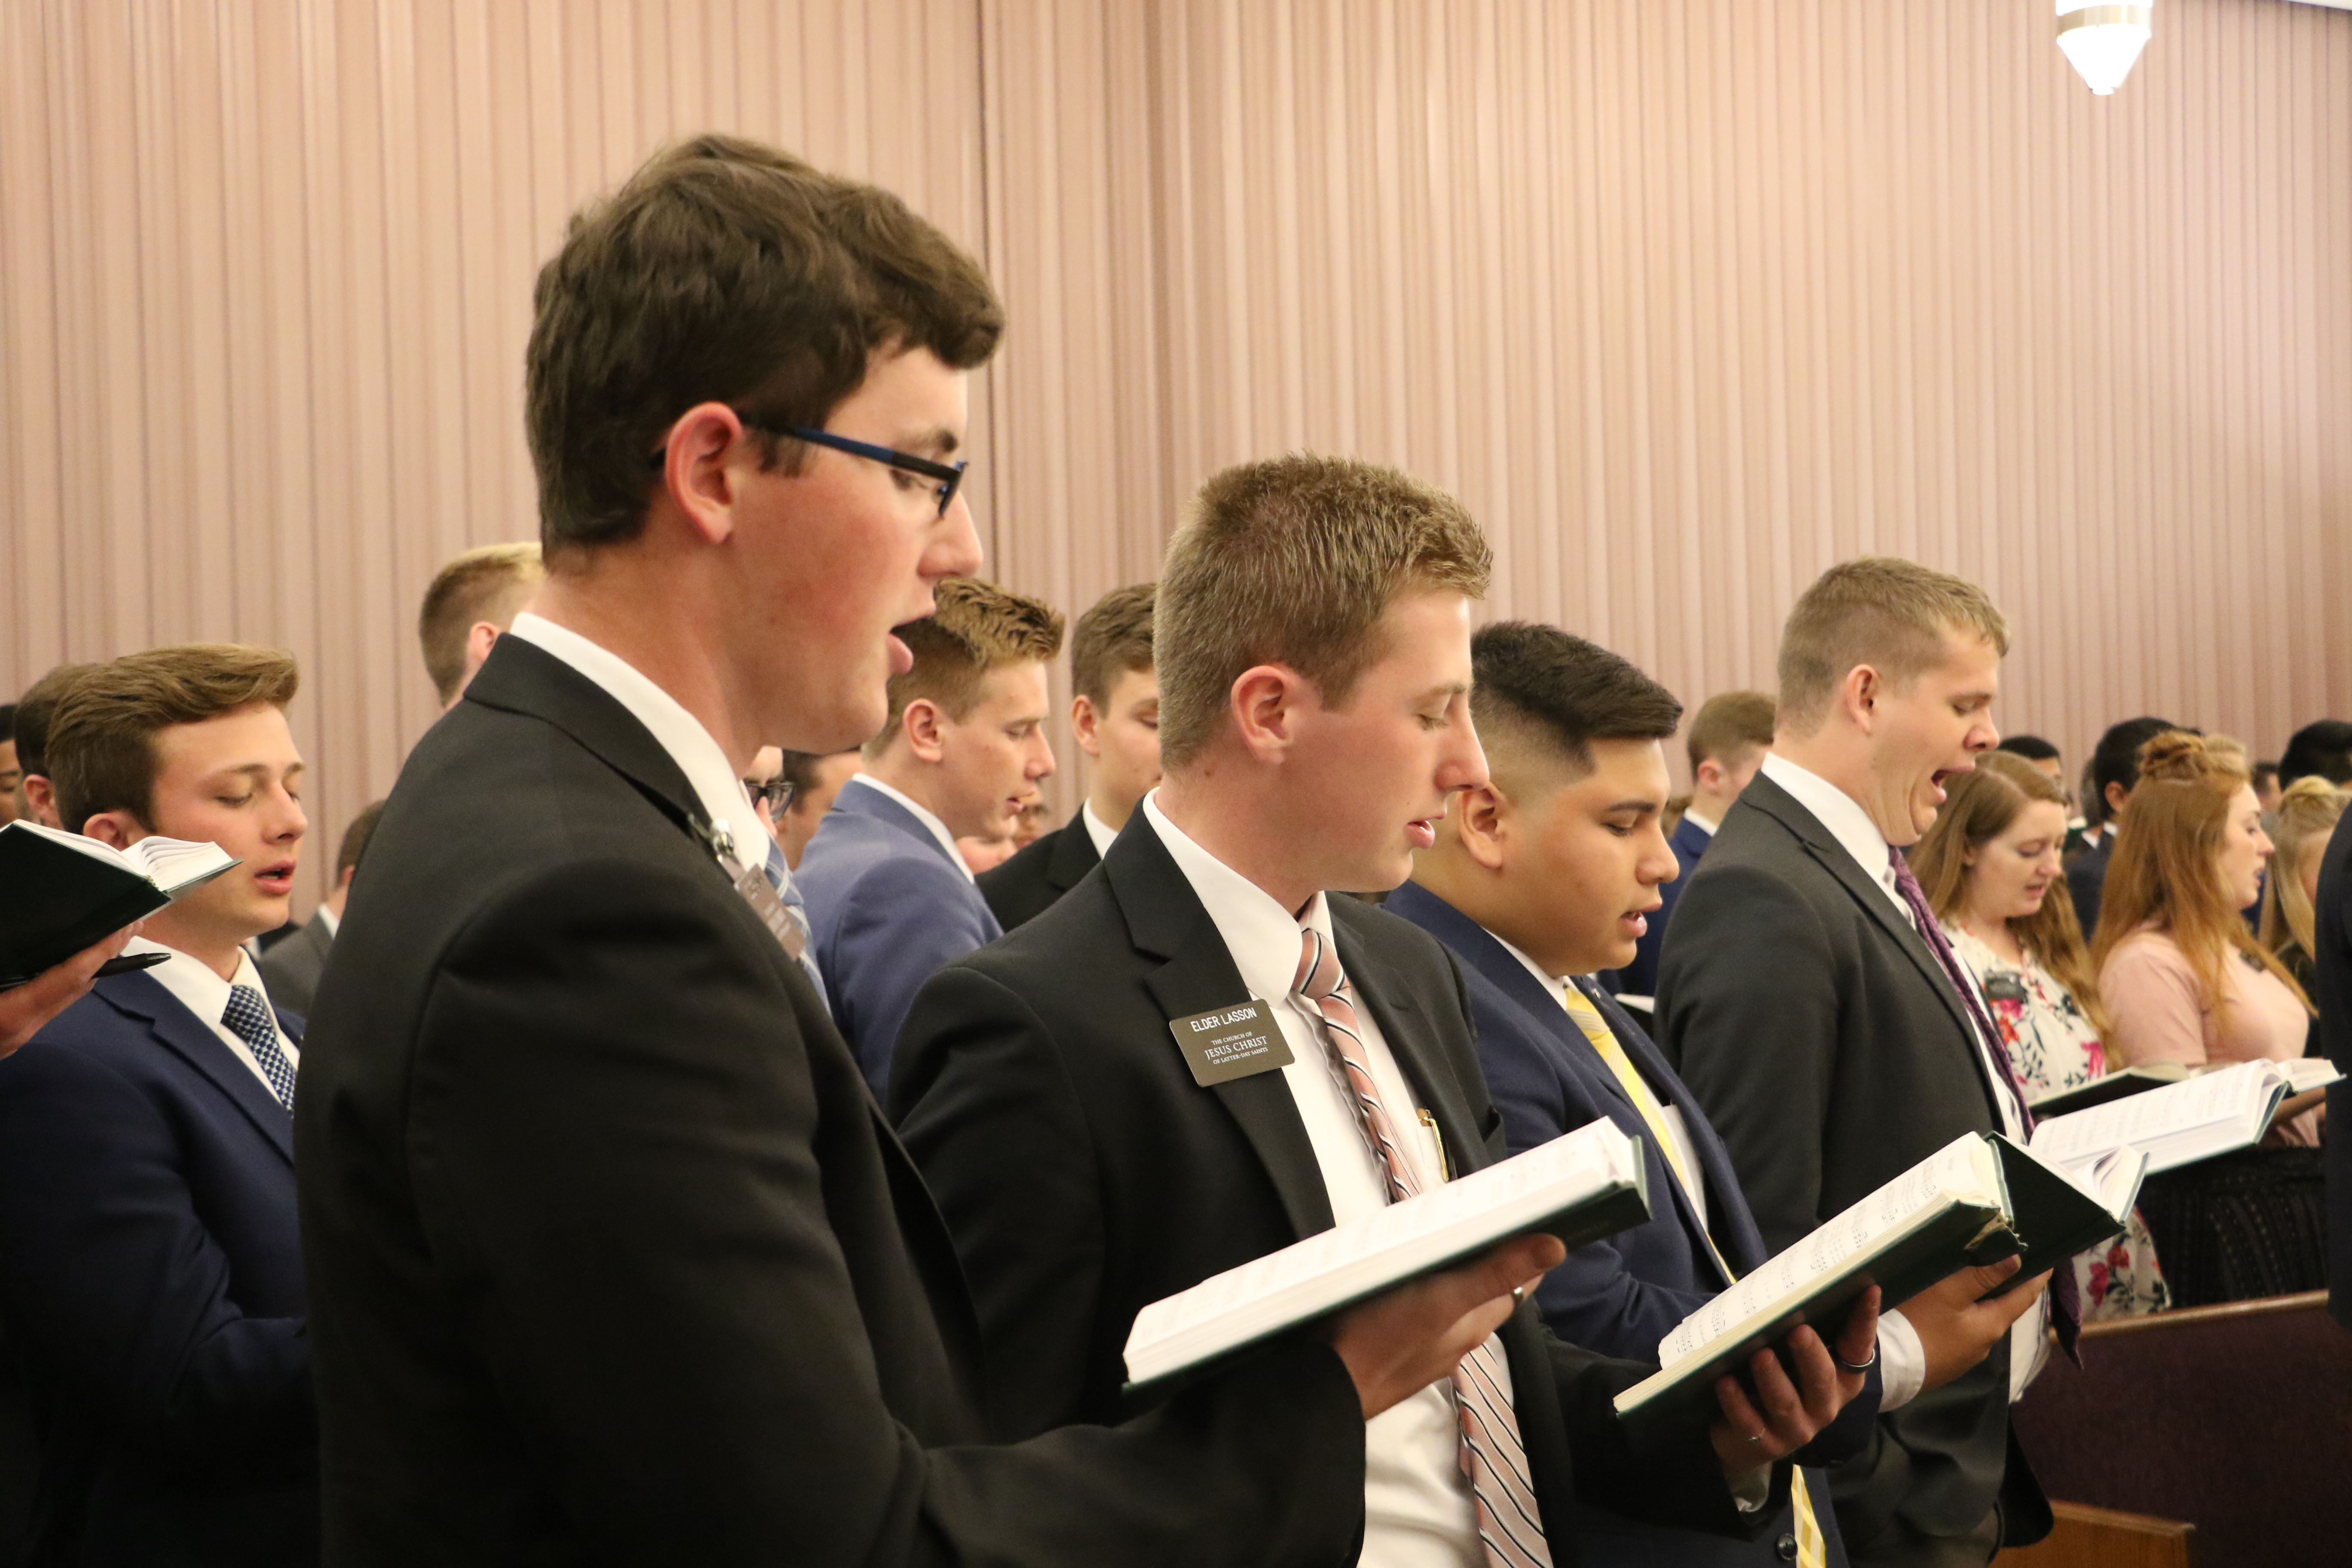 Missionaries serving in the Louisiana Baton Rouge Mission stand and sing under the direction of Sister Mary Cook during a devotional with Elder Quentin L. Cook of the Quorum of the Twelve Apostles on Saturday, Nov. 16, 2019, in Baton Rouge, Louisiana.